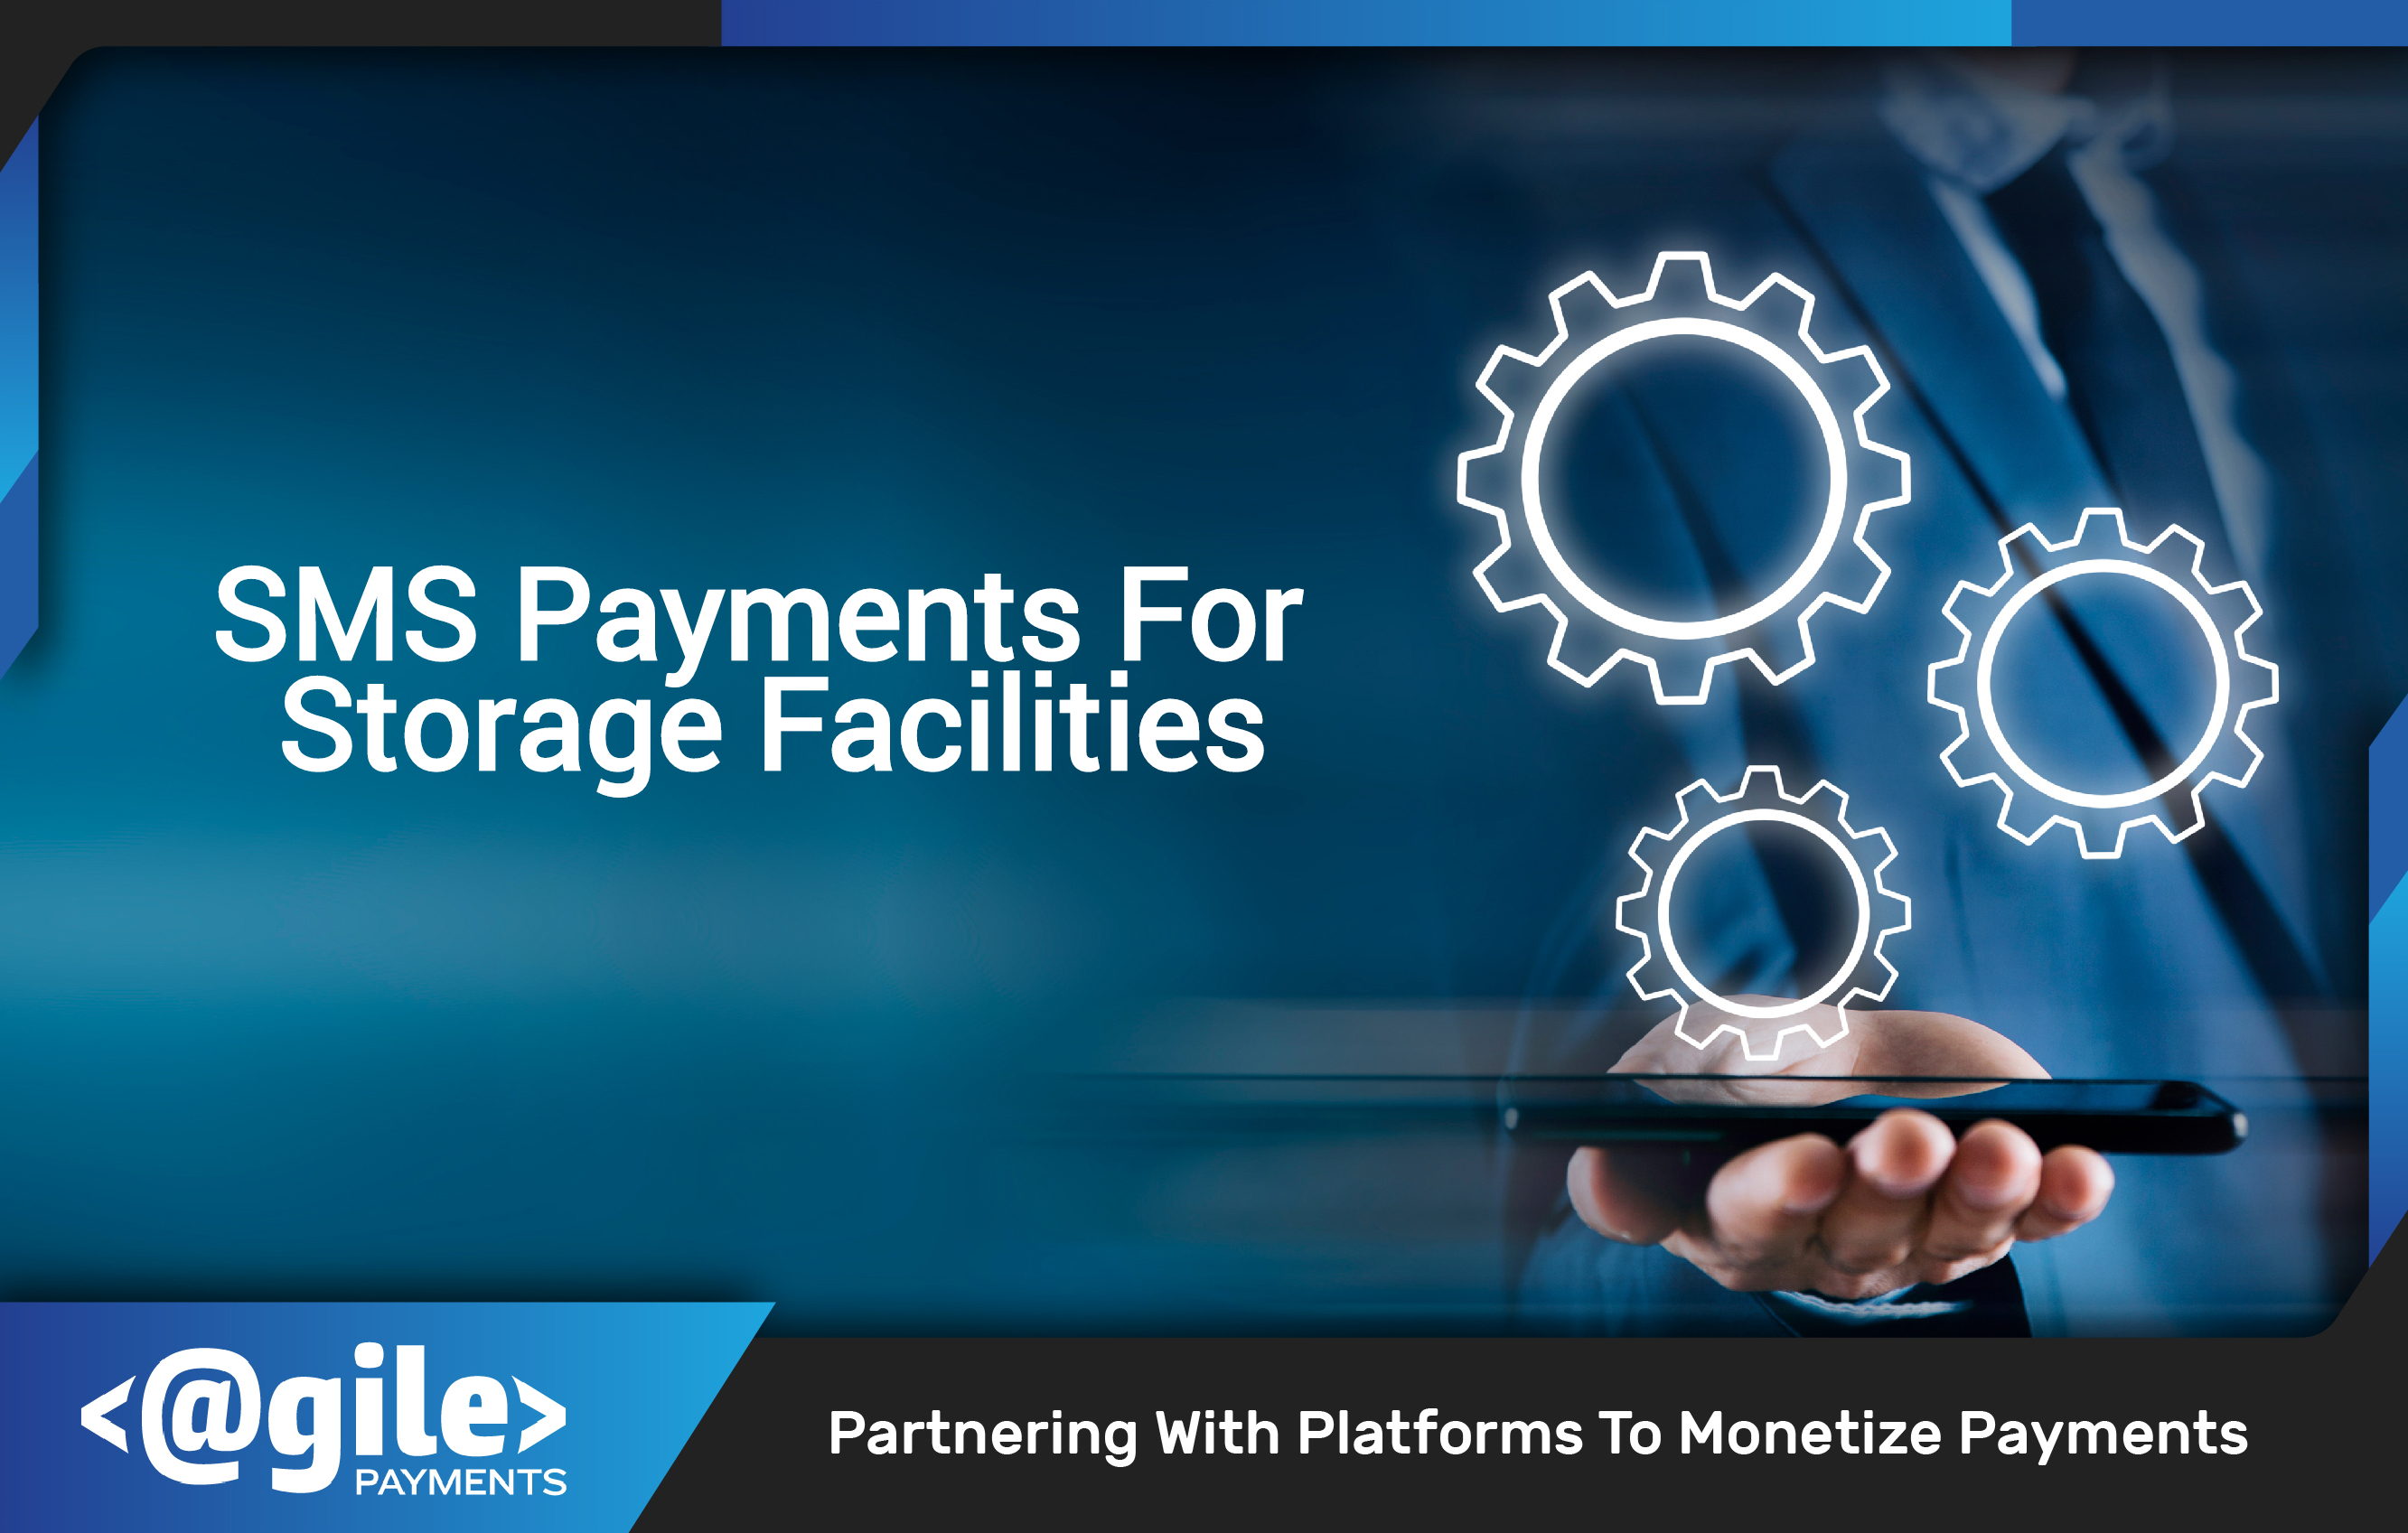 SMS Payments For Storage Facilities